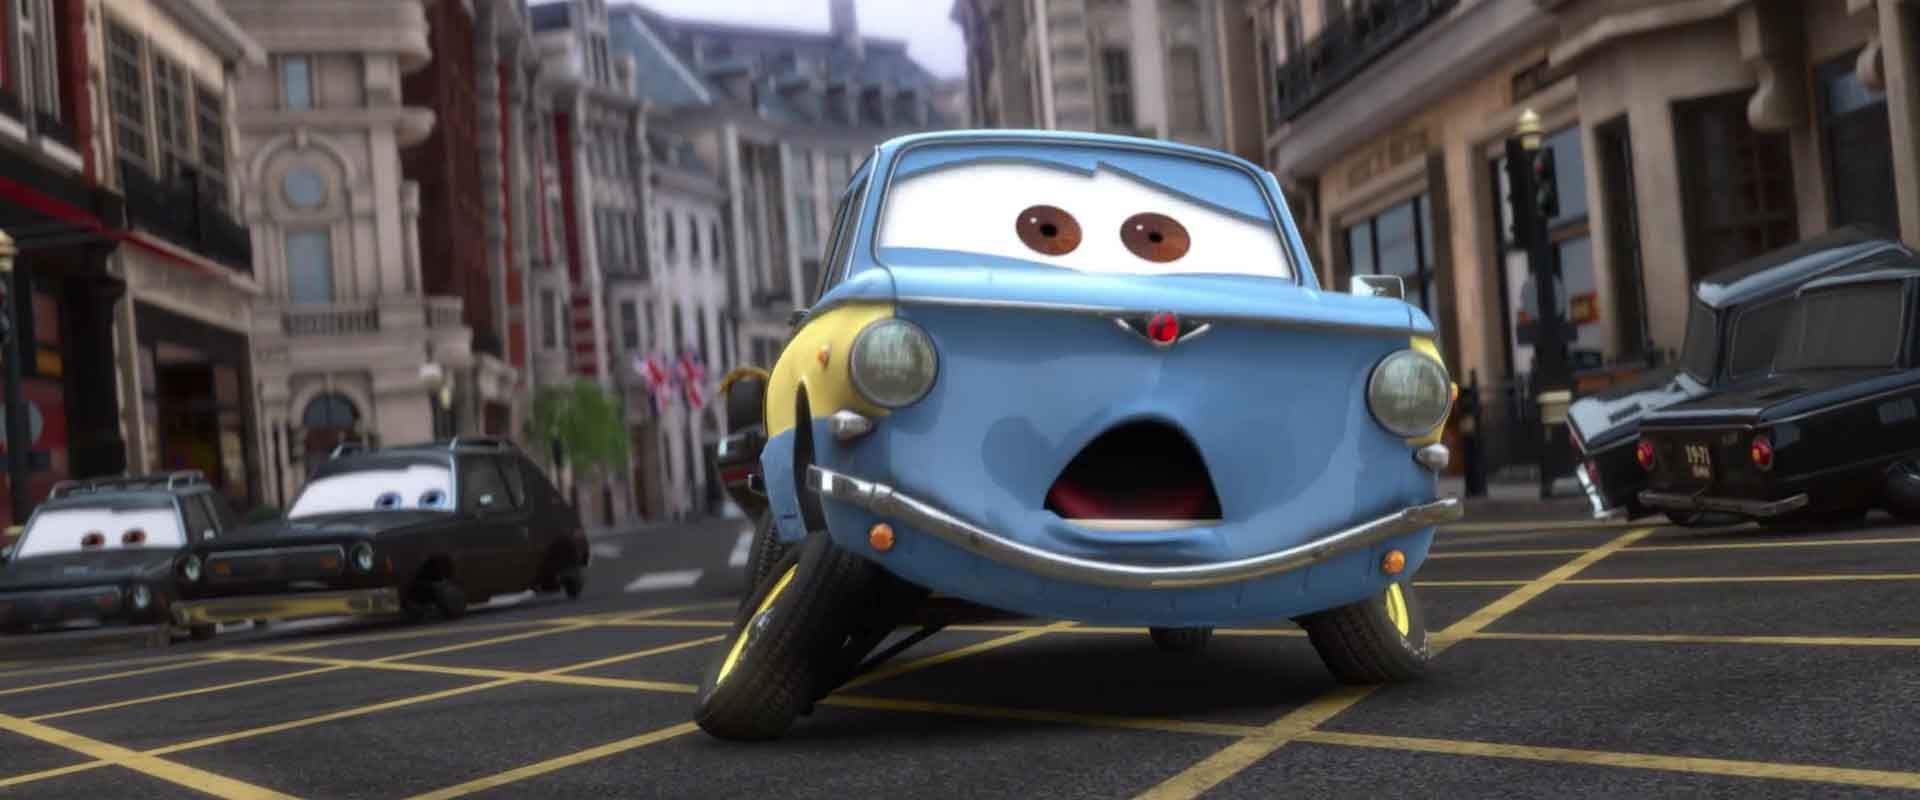 vladimir trunkov personnage character pixar disney cars 2